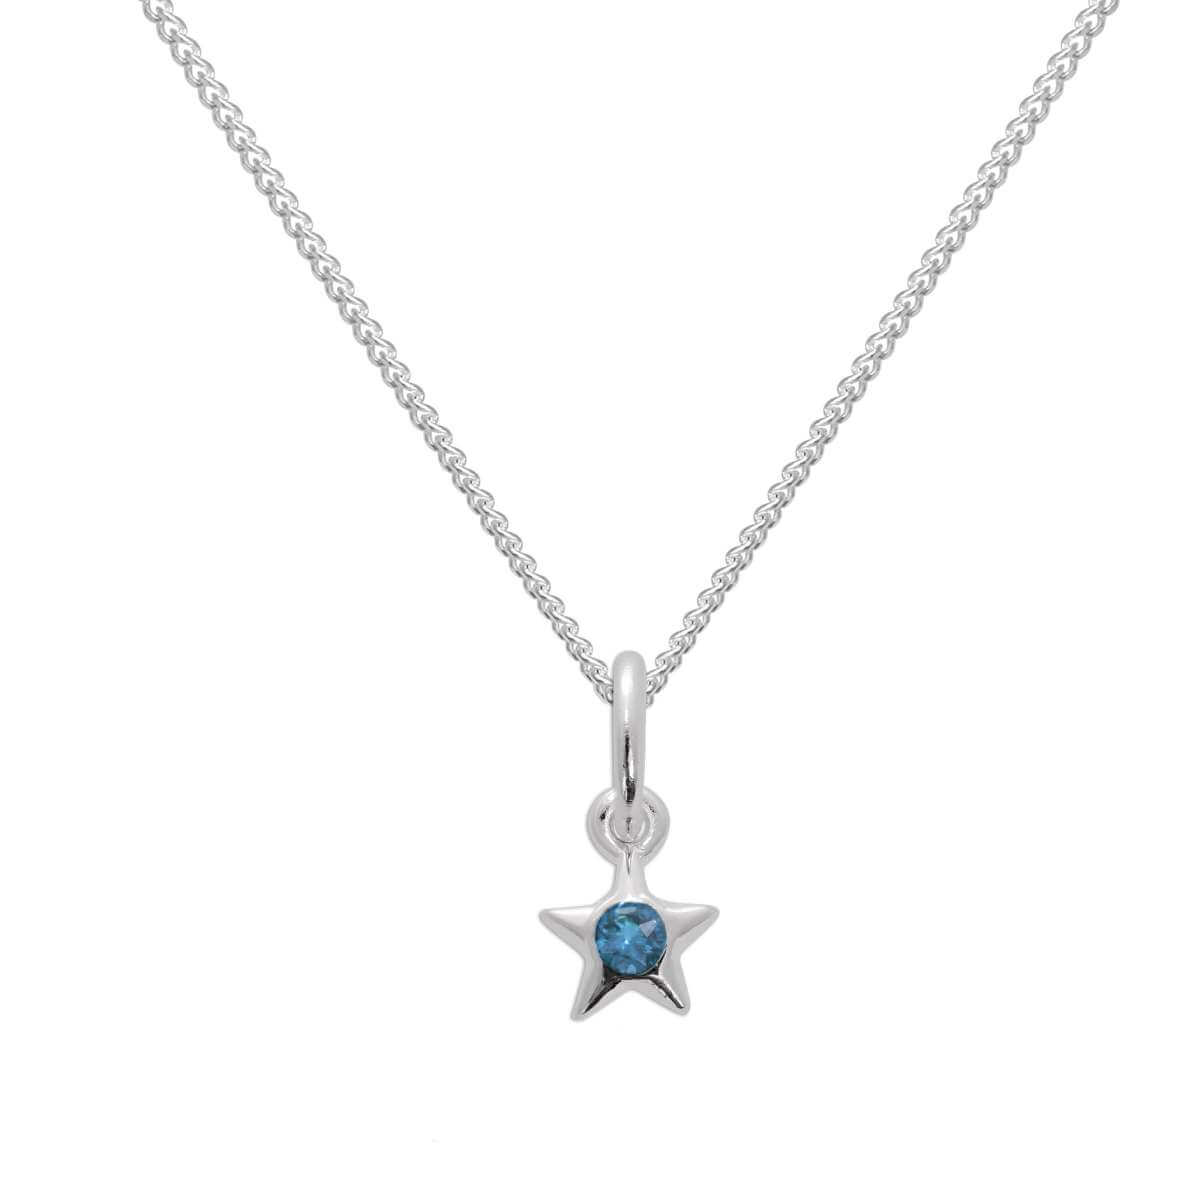 Sterling Silver & Aquamarine CZ Crystal March Birthstone Star Pendant Necklace 14 - 32 Inches